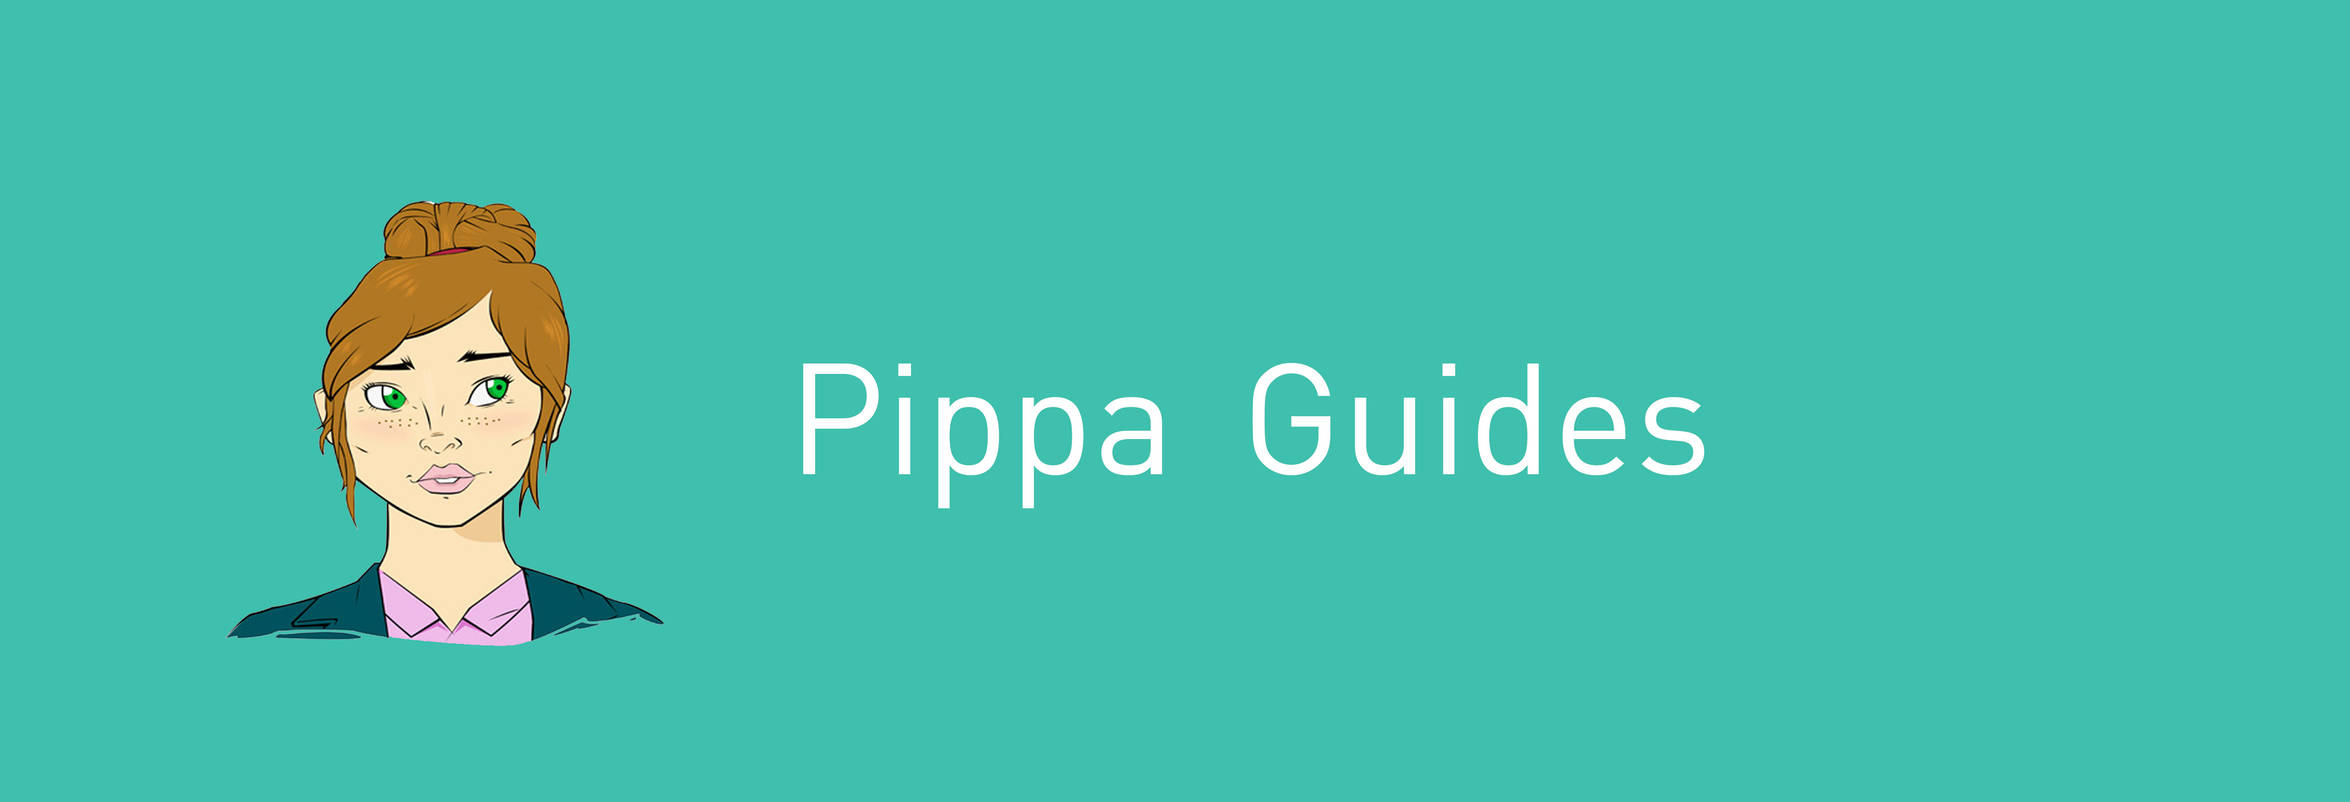 Pippa Guides